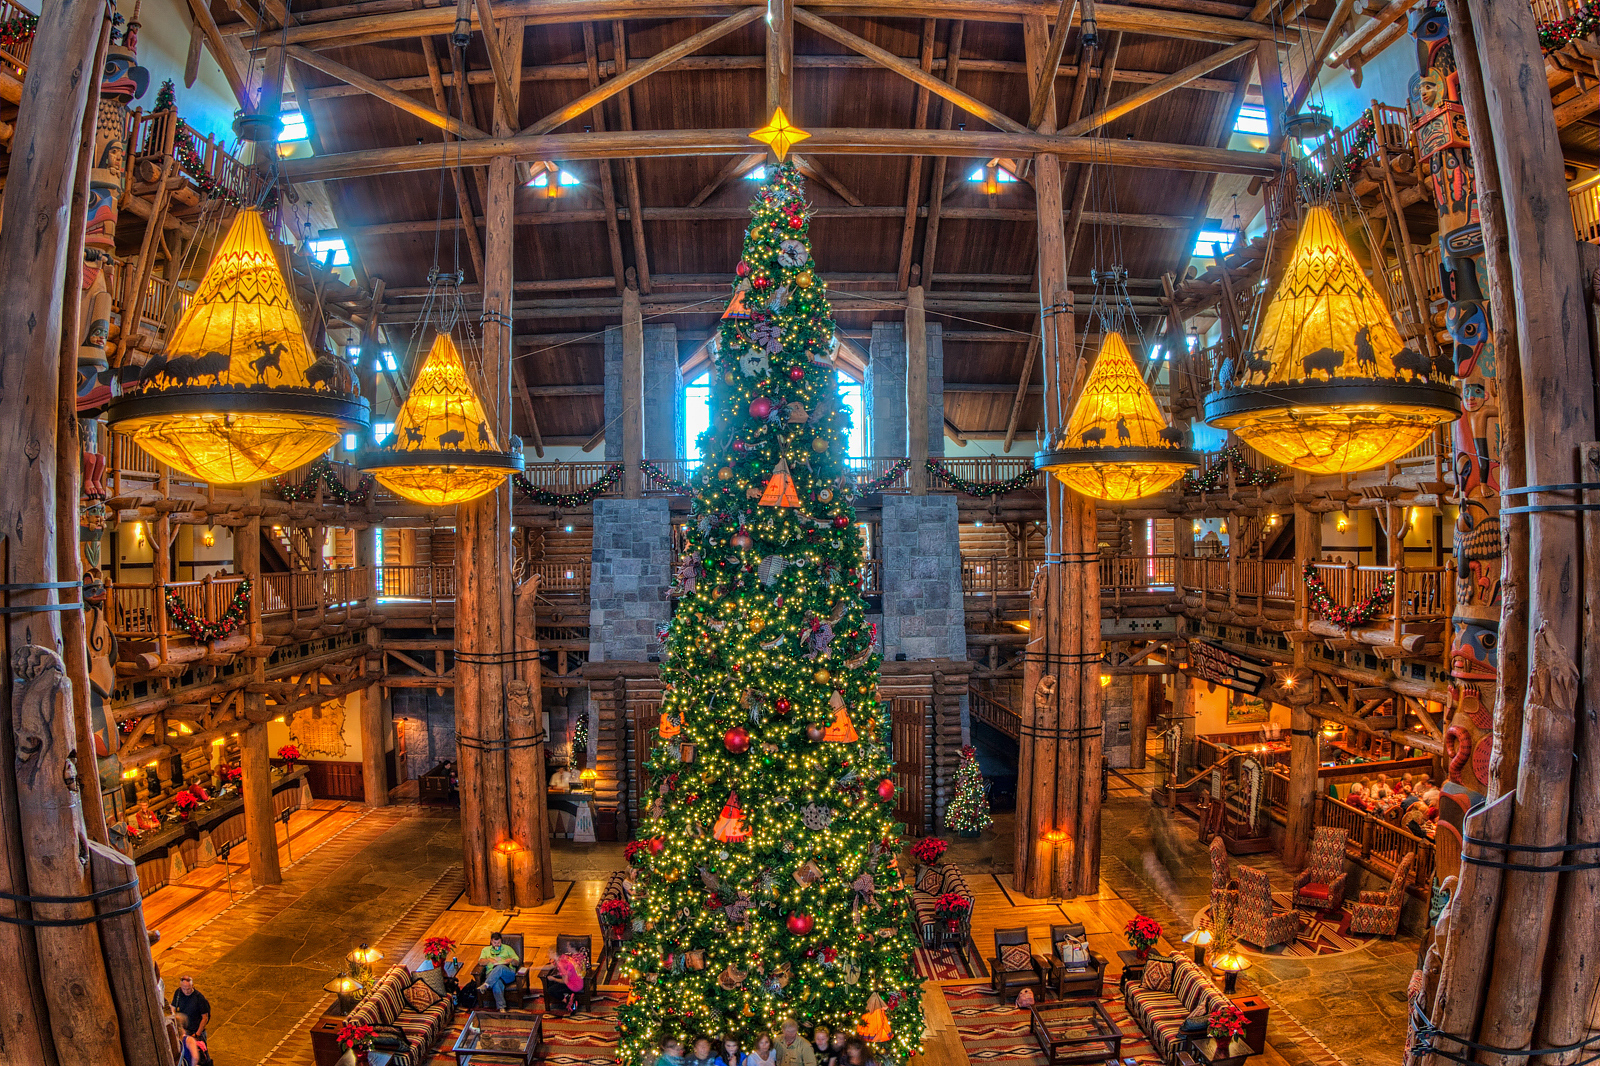 Wilderness Lodge Lobby and Christmas Tree High View